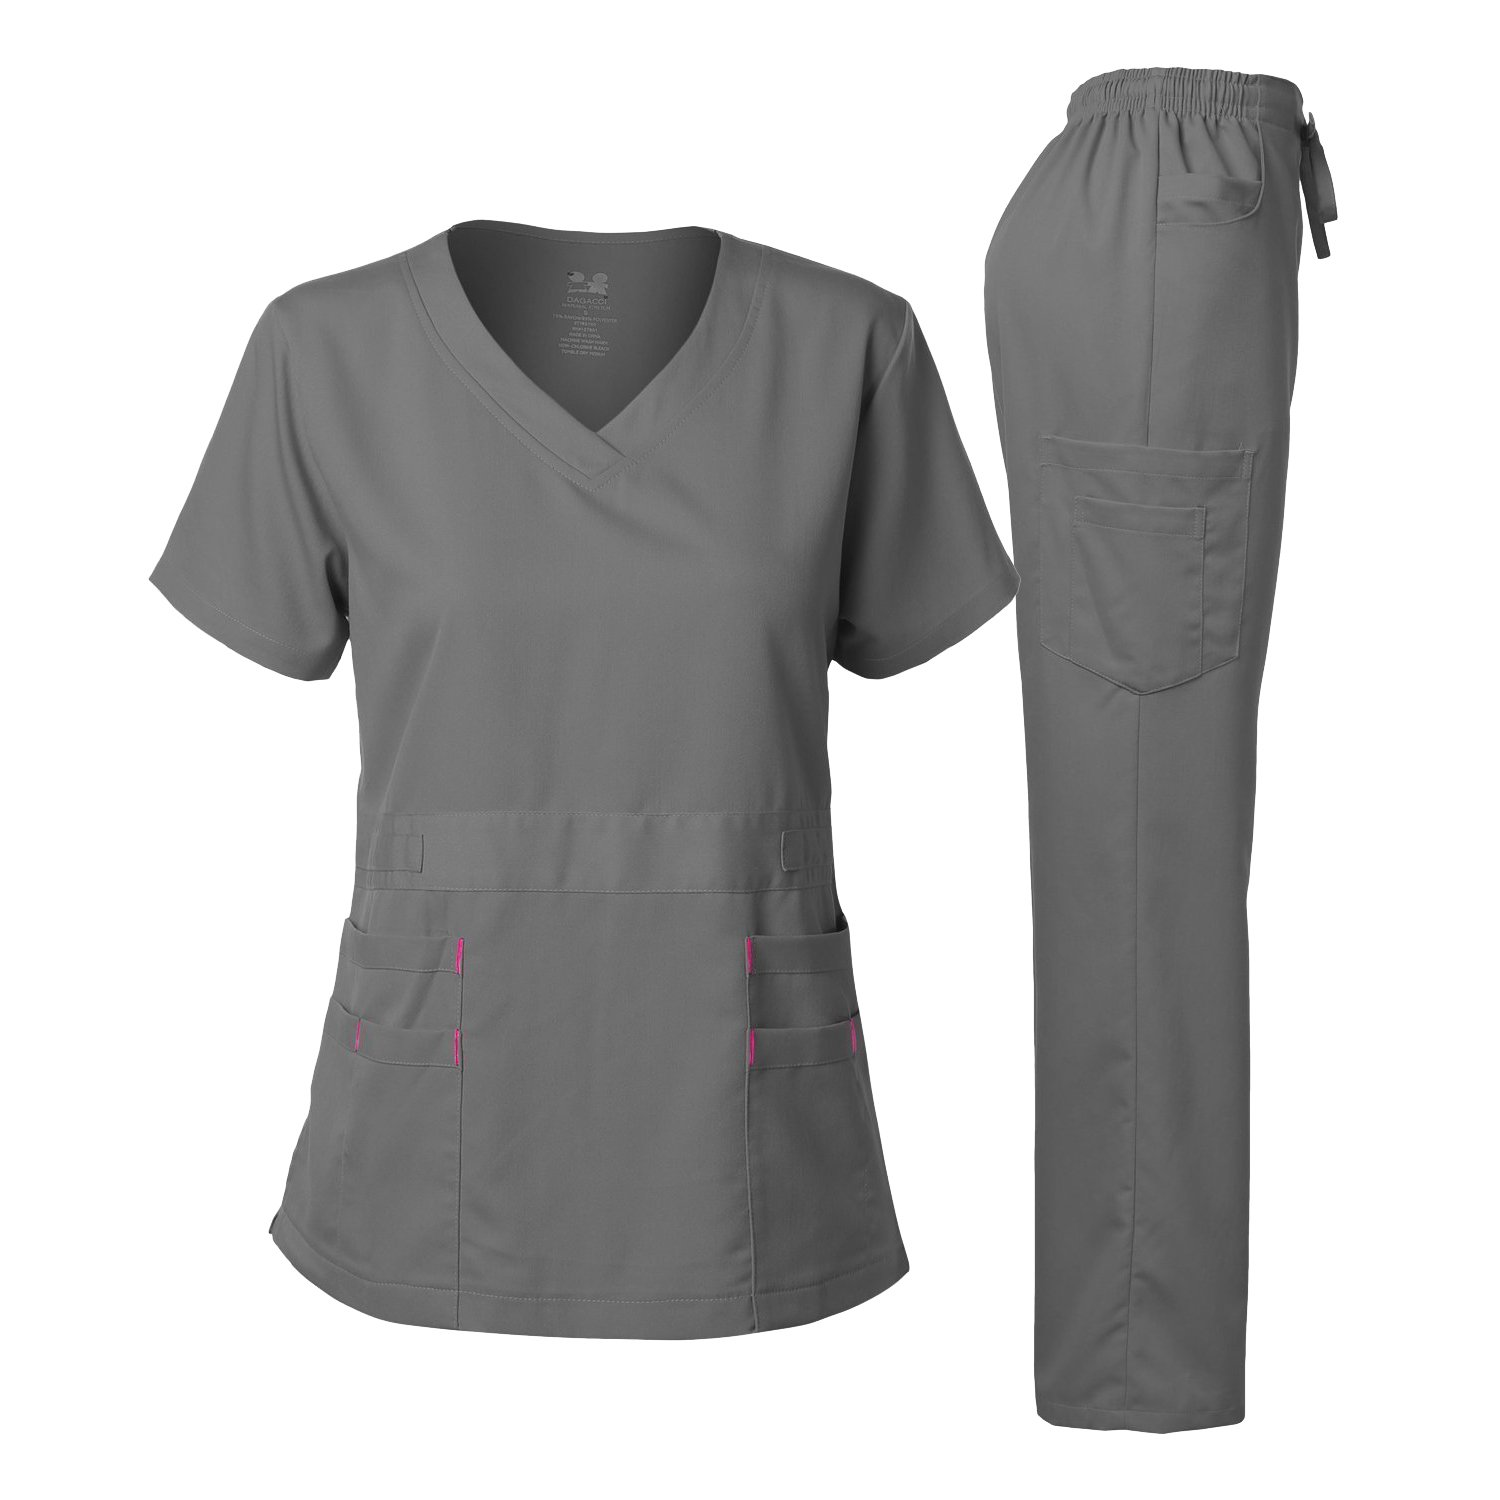 Dagacci Medical Uniform Women's Scrubs Set Stretch Ultra Soft Top and Pants (XL, Petwer Gray) by Dagacci Medical Uniform